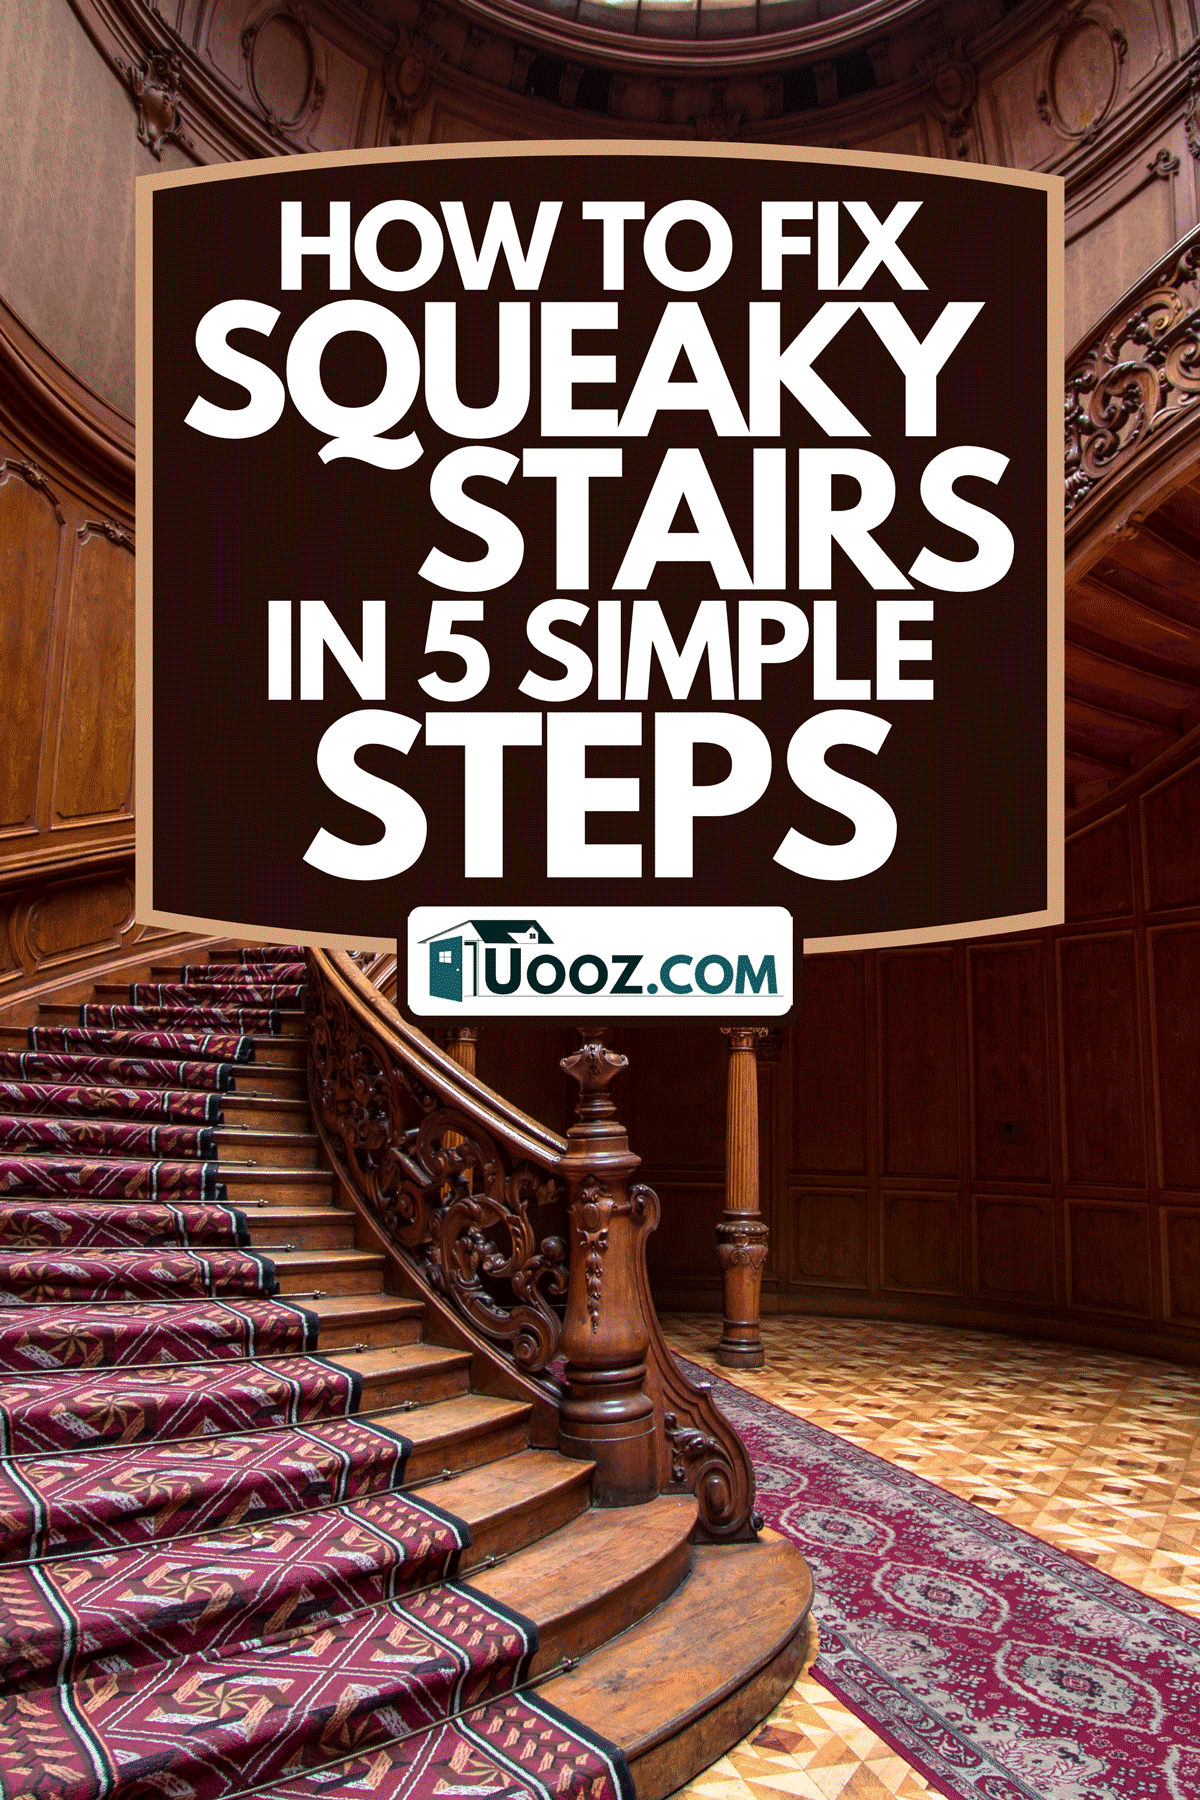 Rich entrance hall with stained-glass window, twisted staircase and laced rails, How To Fix Squeaky Stairs In 5 Simple Steps